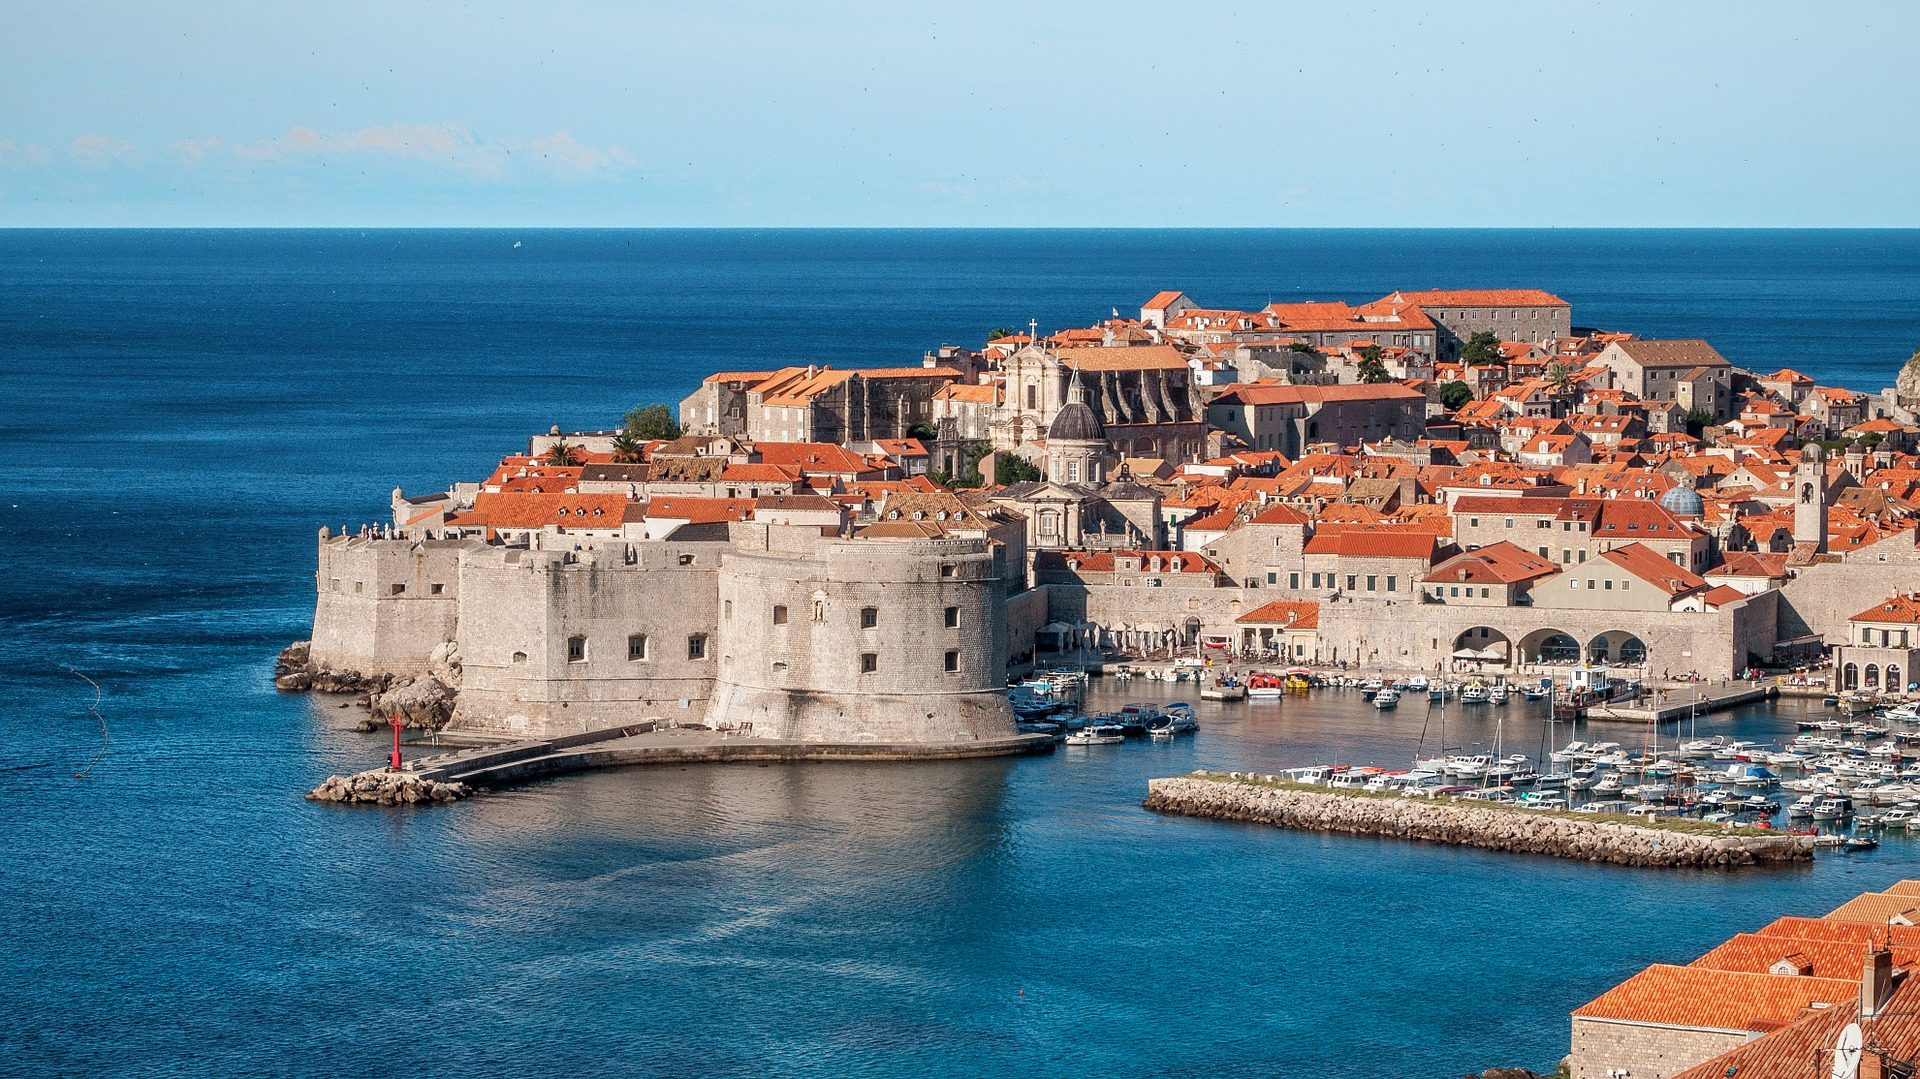 Dubrovnik Harbor